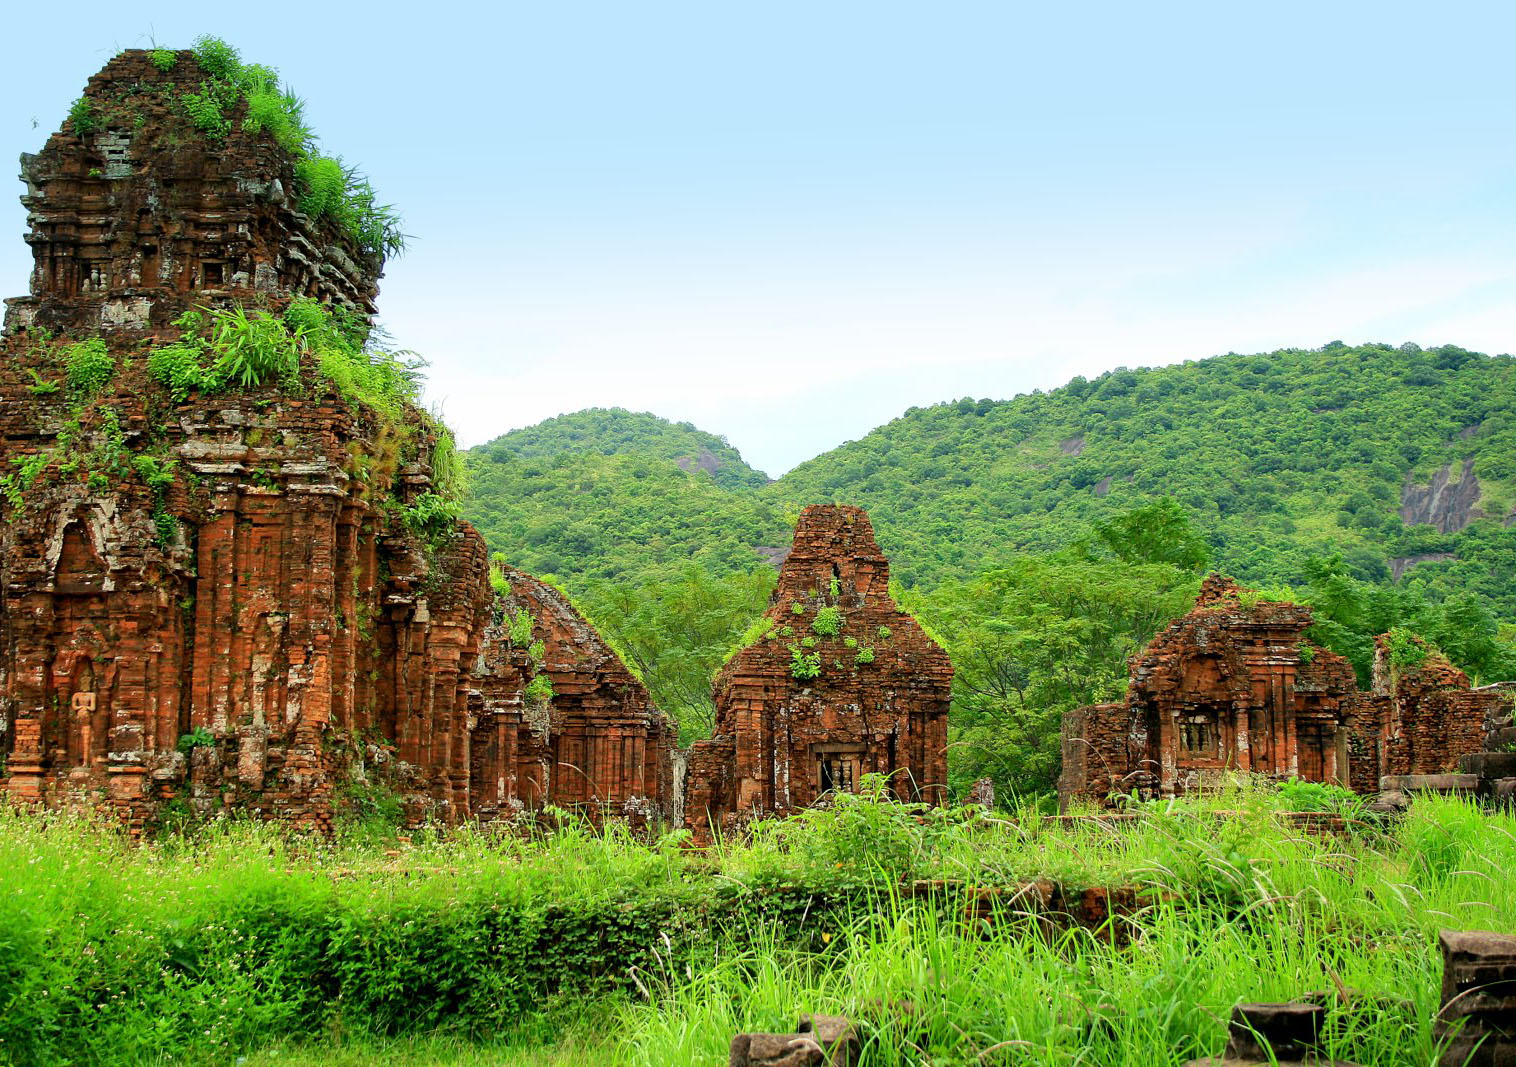 vietnam travel tours Vietnam travel packages vietnam homestay tour it will be your unique experience as you walk along tiny ancient alleys, visit communal house in mong phu hamlet - the only hamlet whose original village entrance gate remains intact, dedicated to national heroes.